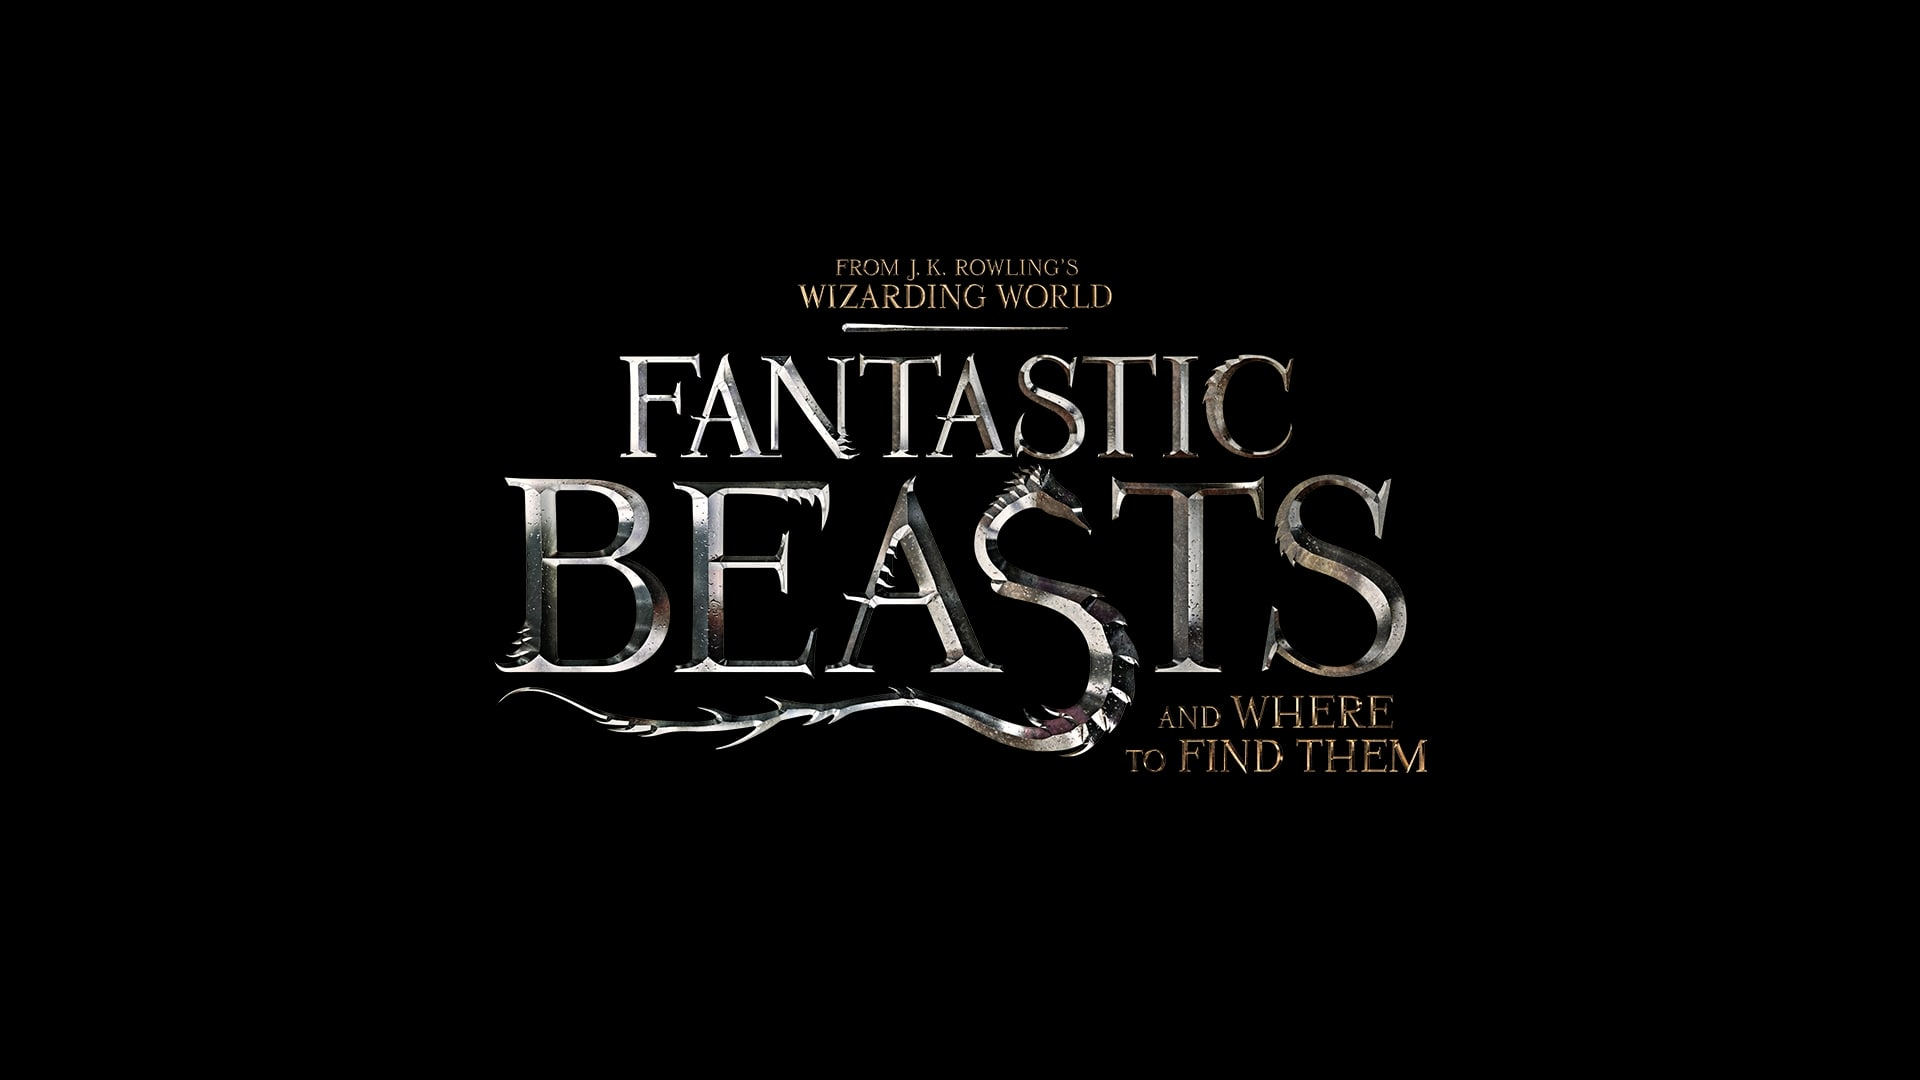 Fantastic Beasts and Where to Find Them HD wallpapers